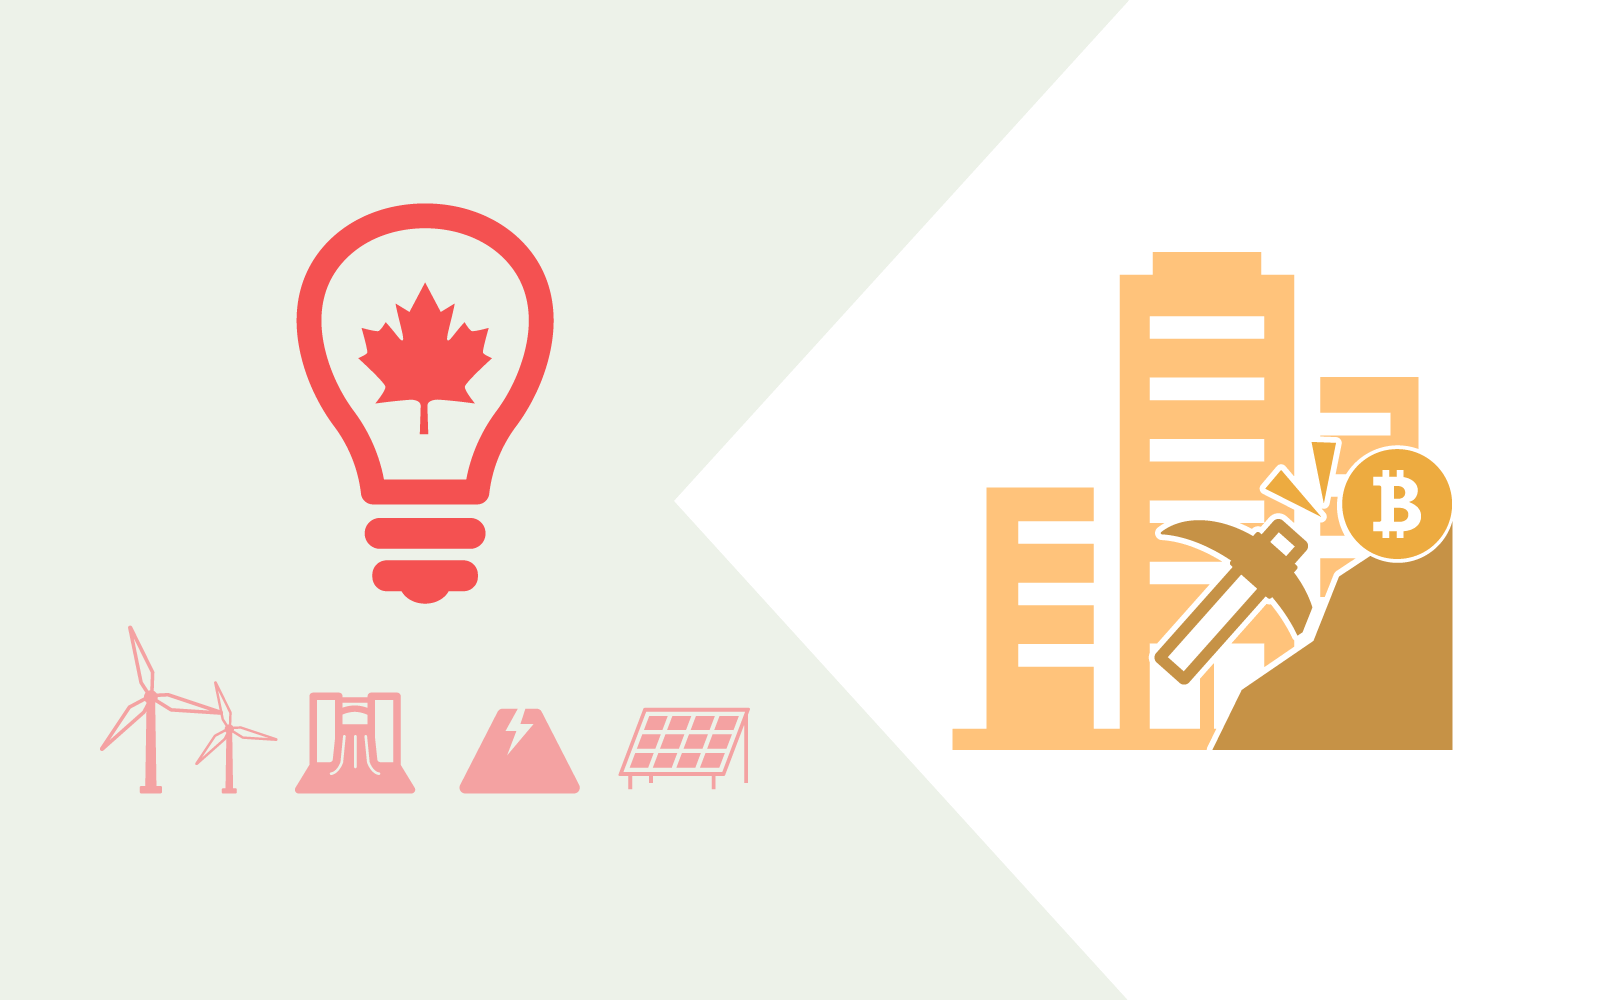 CANADA – NEW LAND FOR CRYPTOCURRENCY MINING COMPANIES